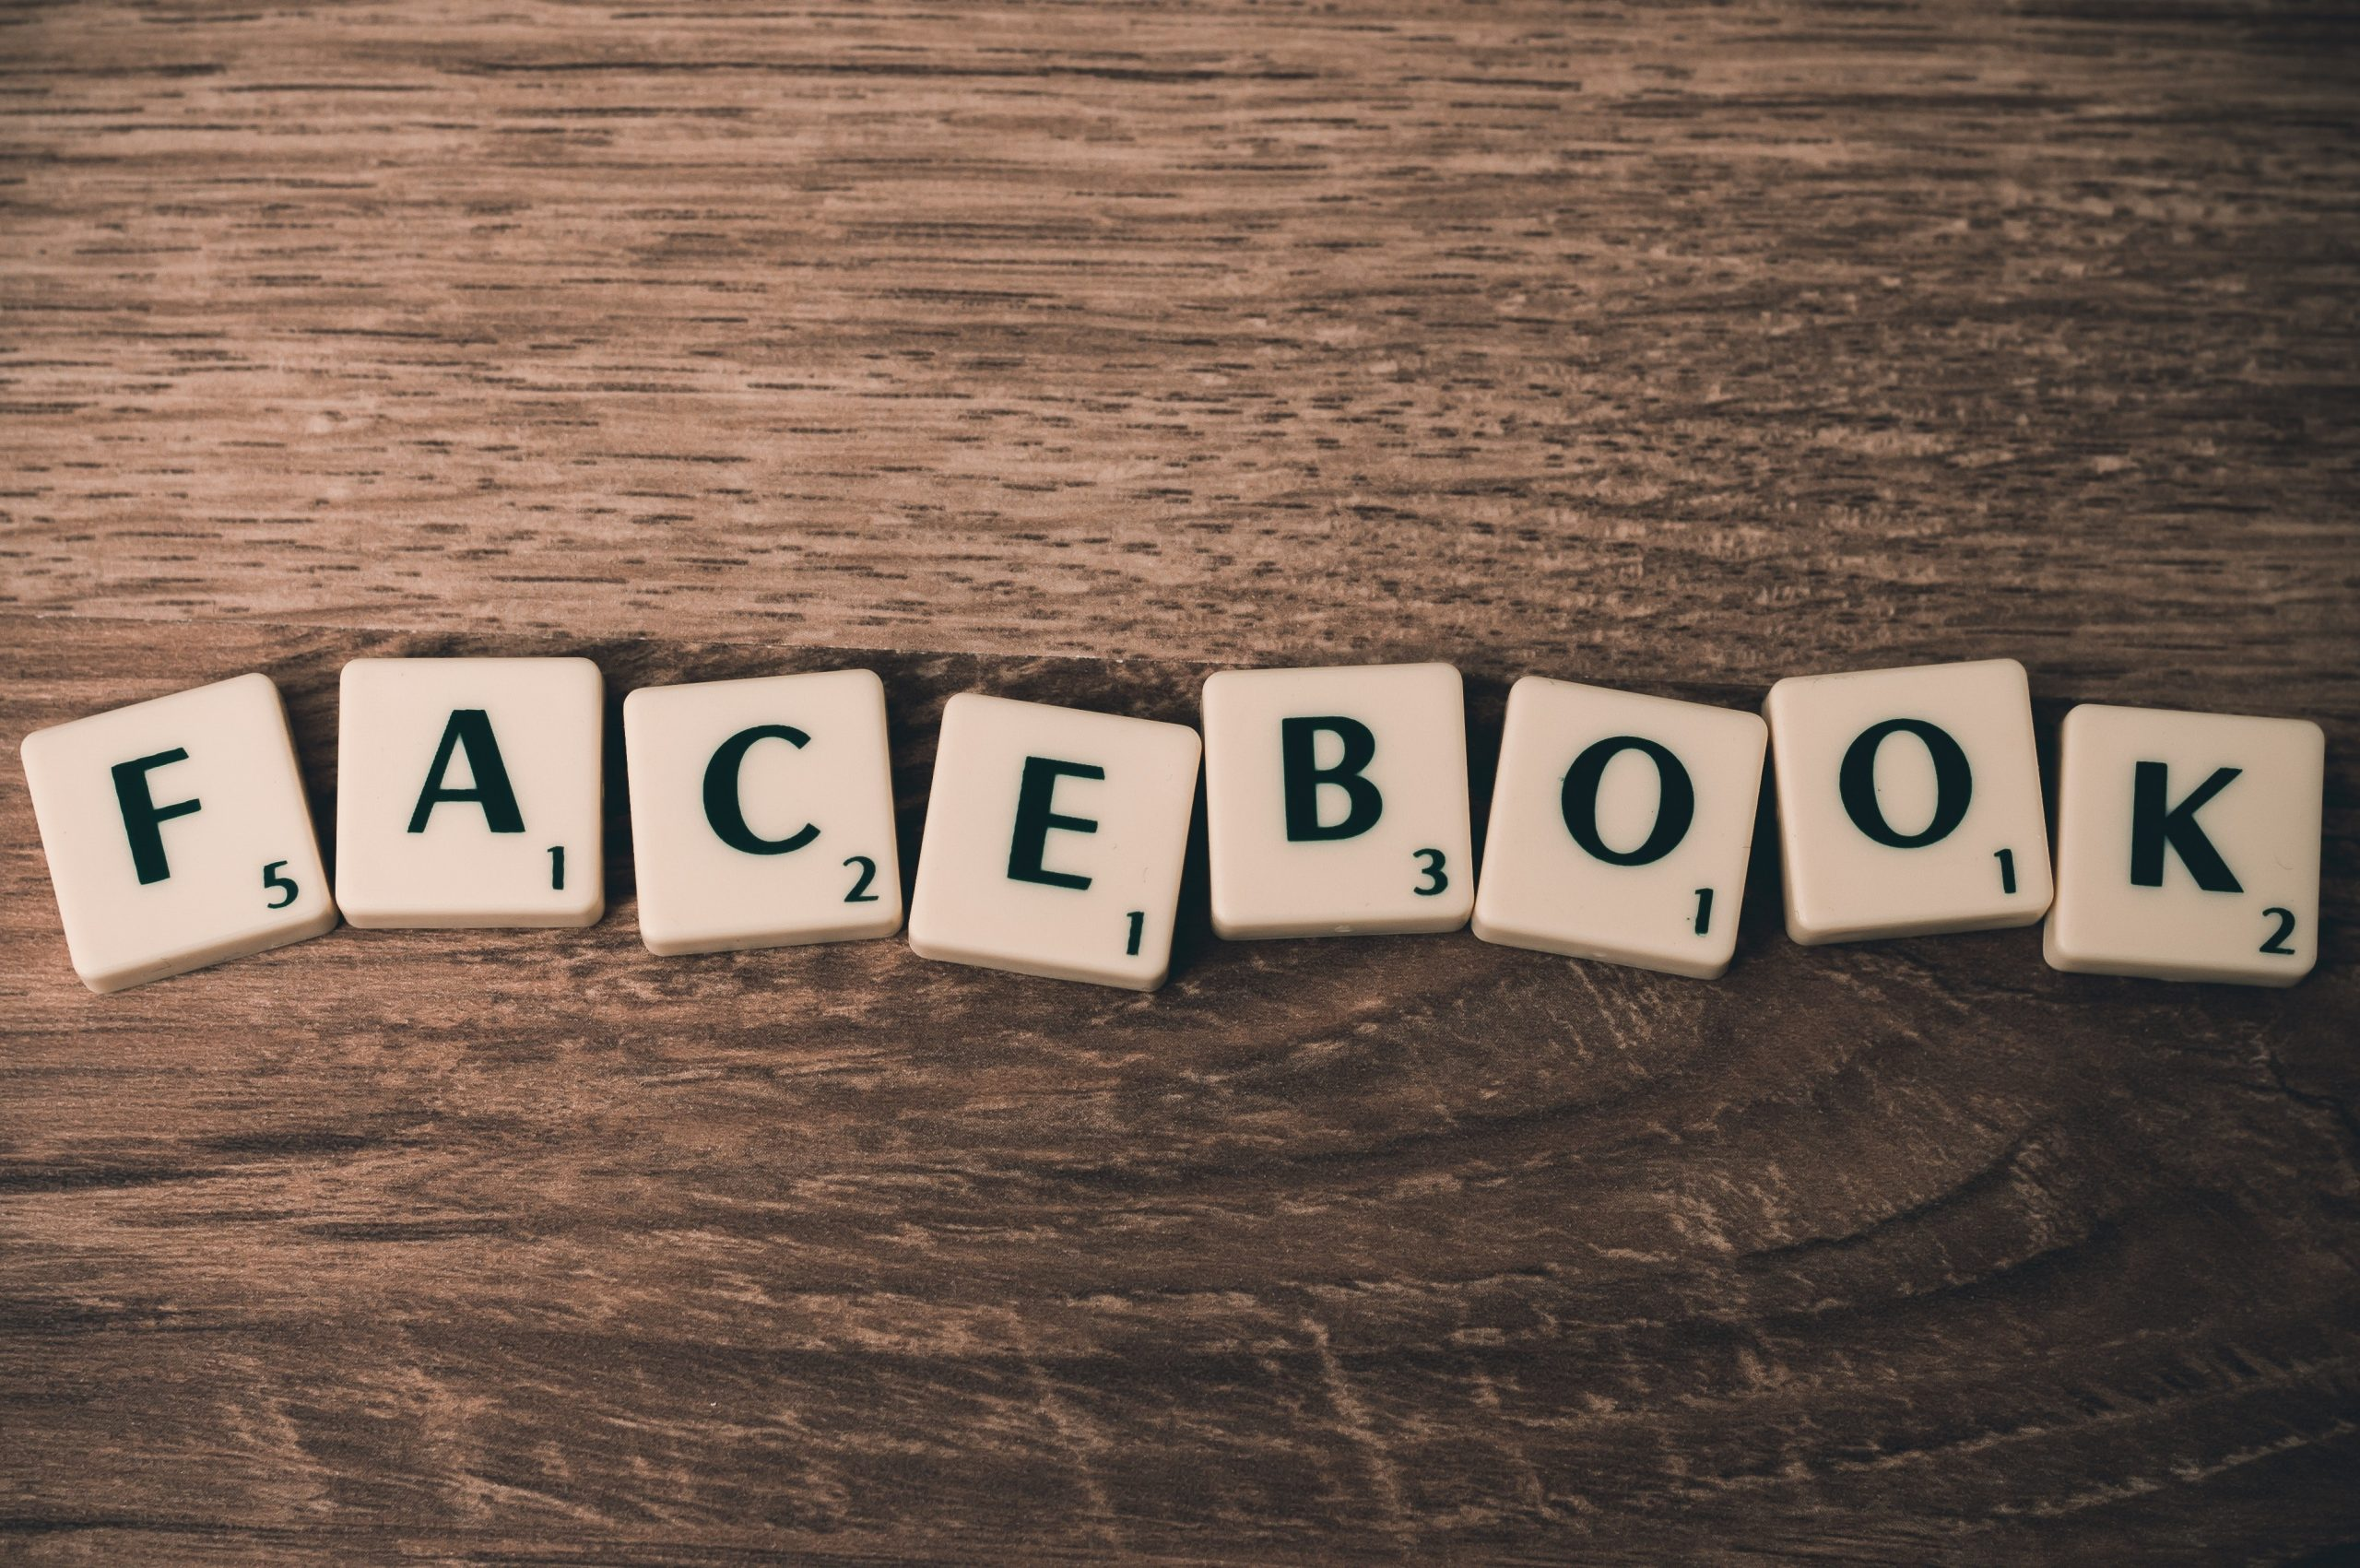 Facebook introduces its own branch of cryptocurrency called Libra